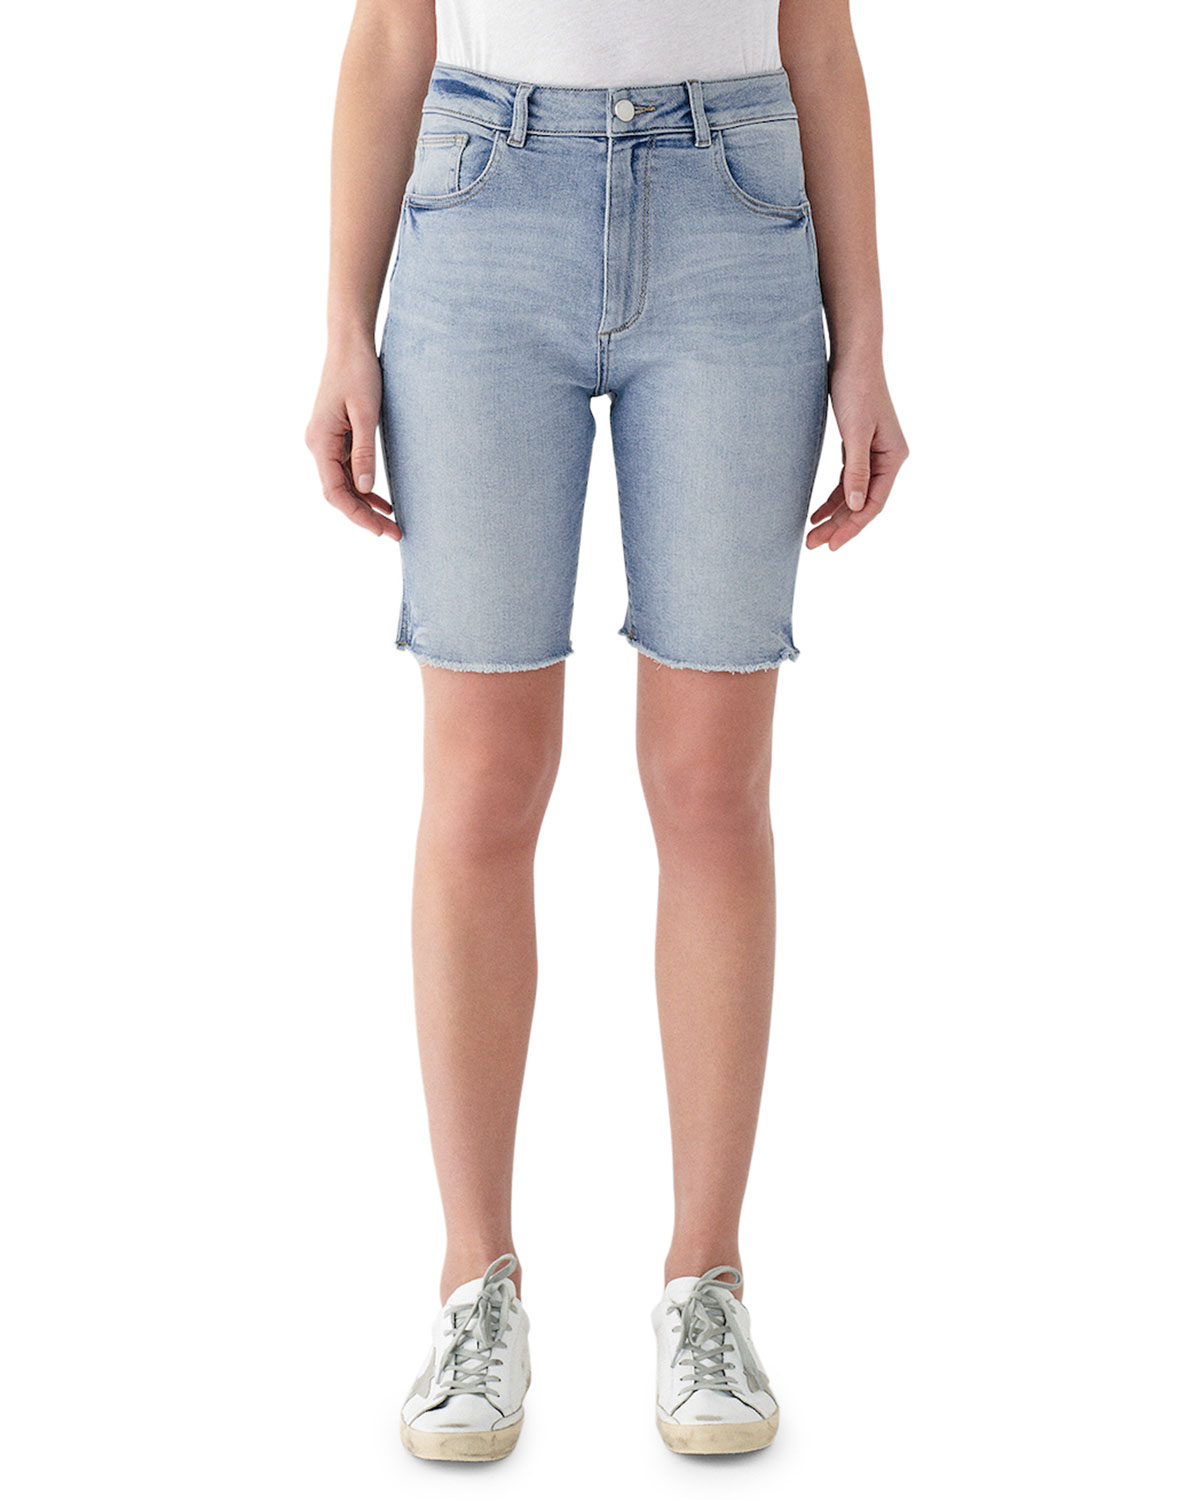 Dl Premium Denim Shorts JERRY HIGH-RISE VINTAGE SLIM BERMUDA SHORTS